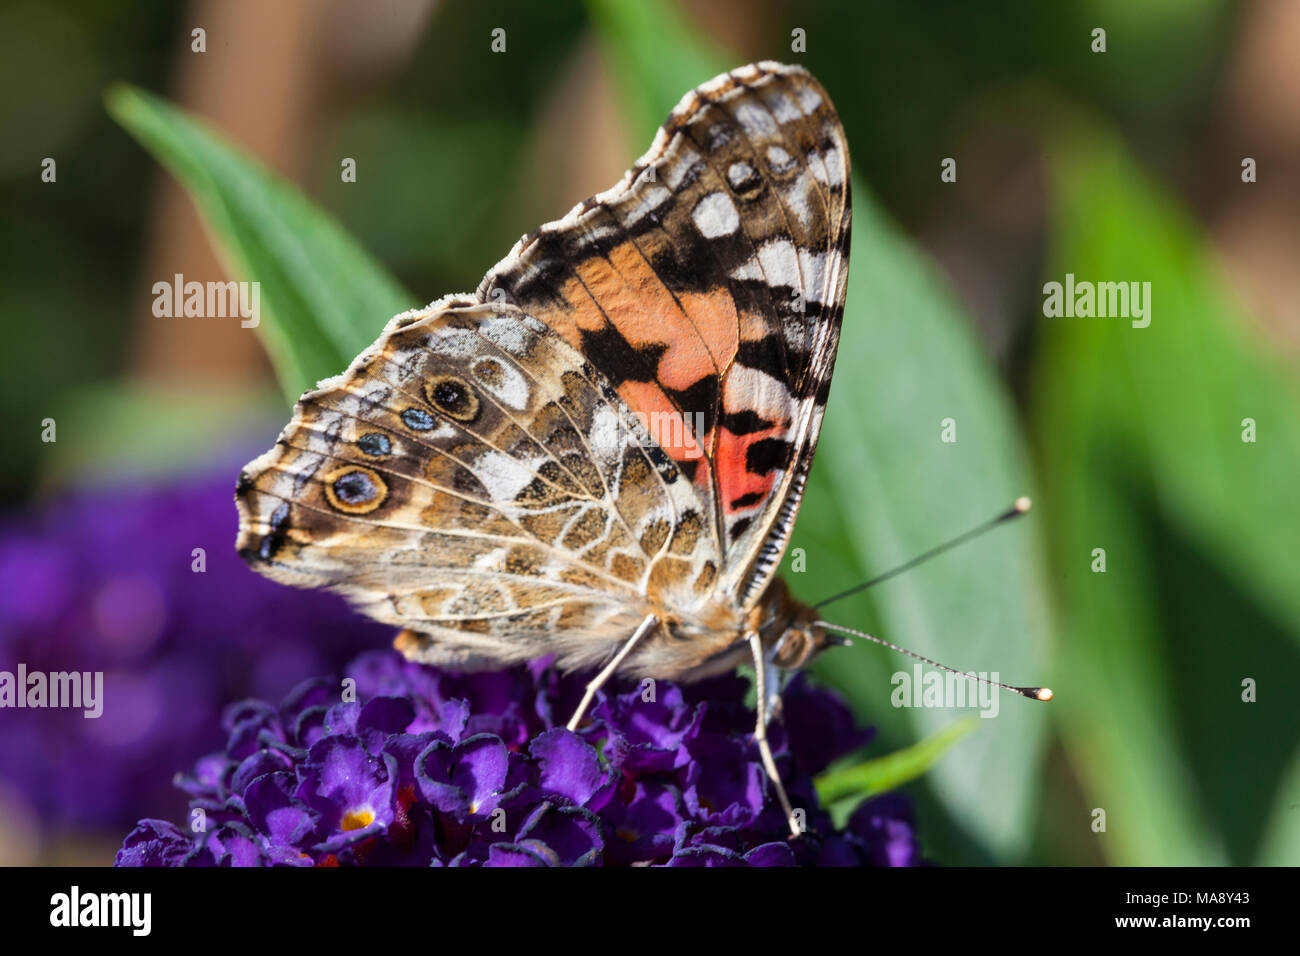 Common garden butterfly in English country garden - Stock Image